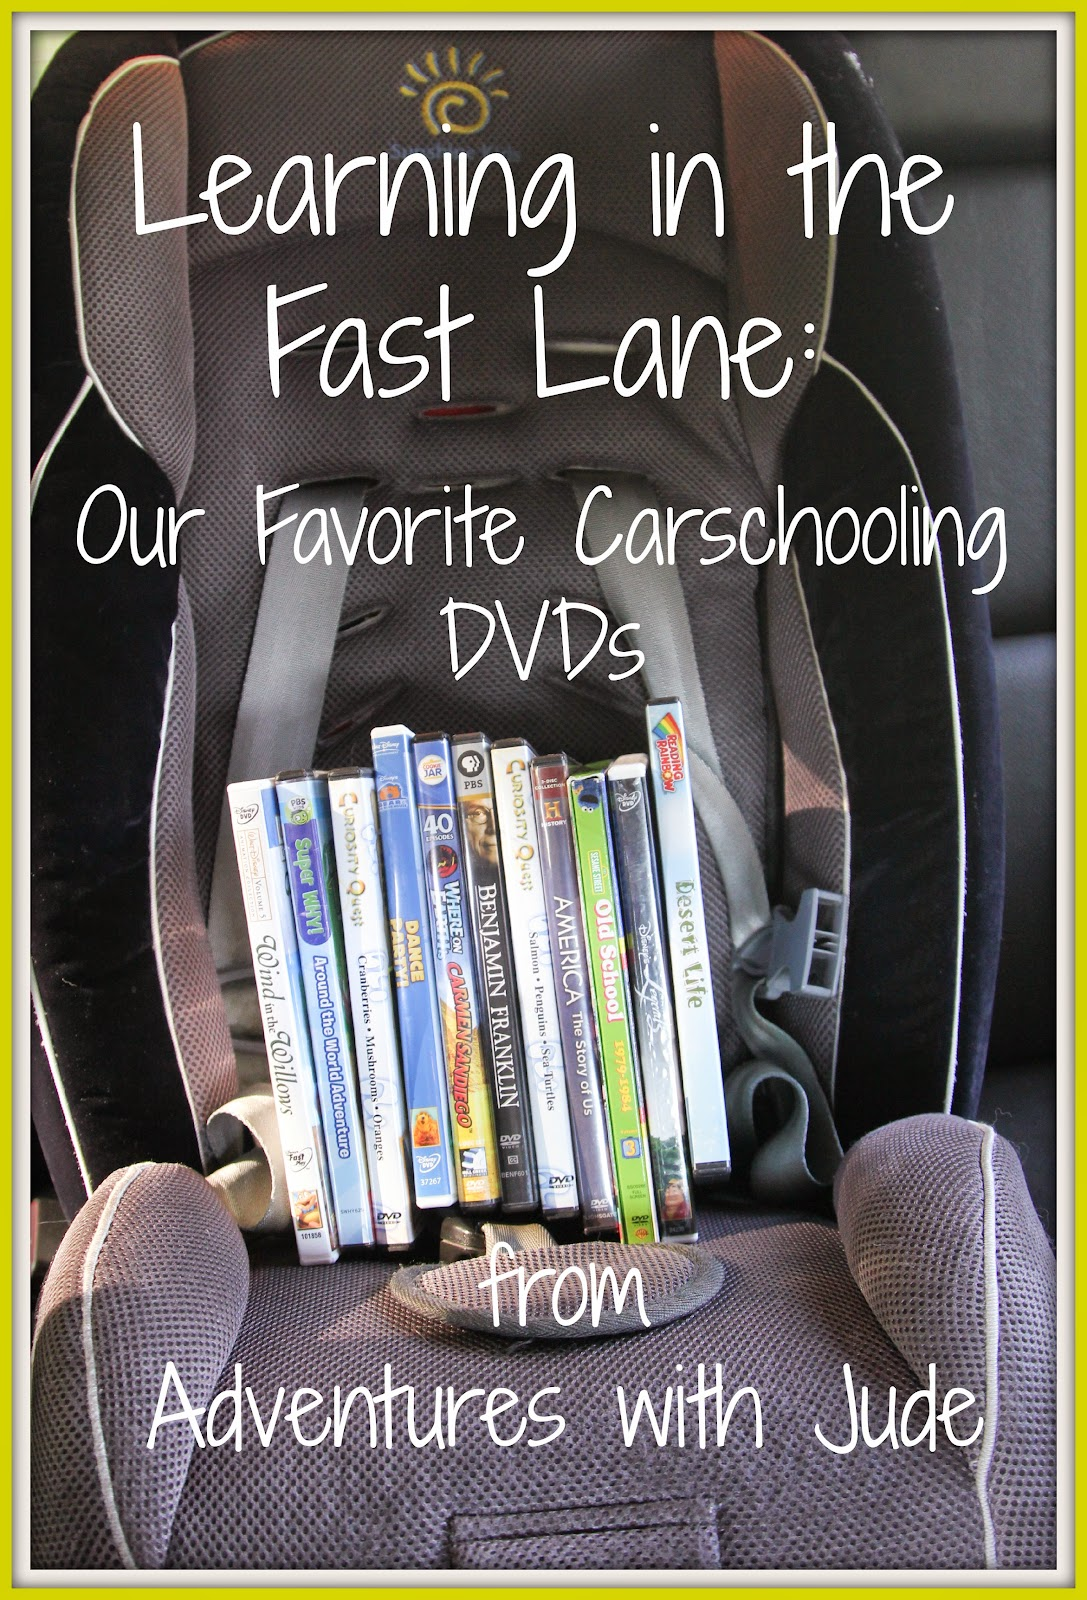 Our Favorite Carschooling DVDs (PK & early elementary)